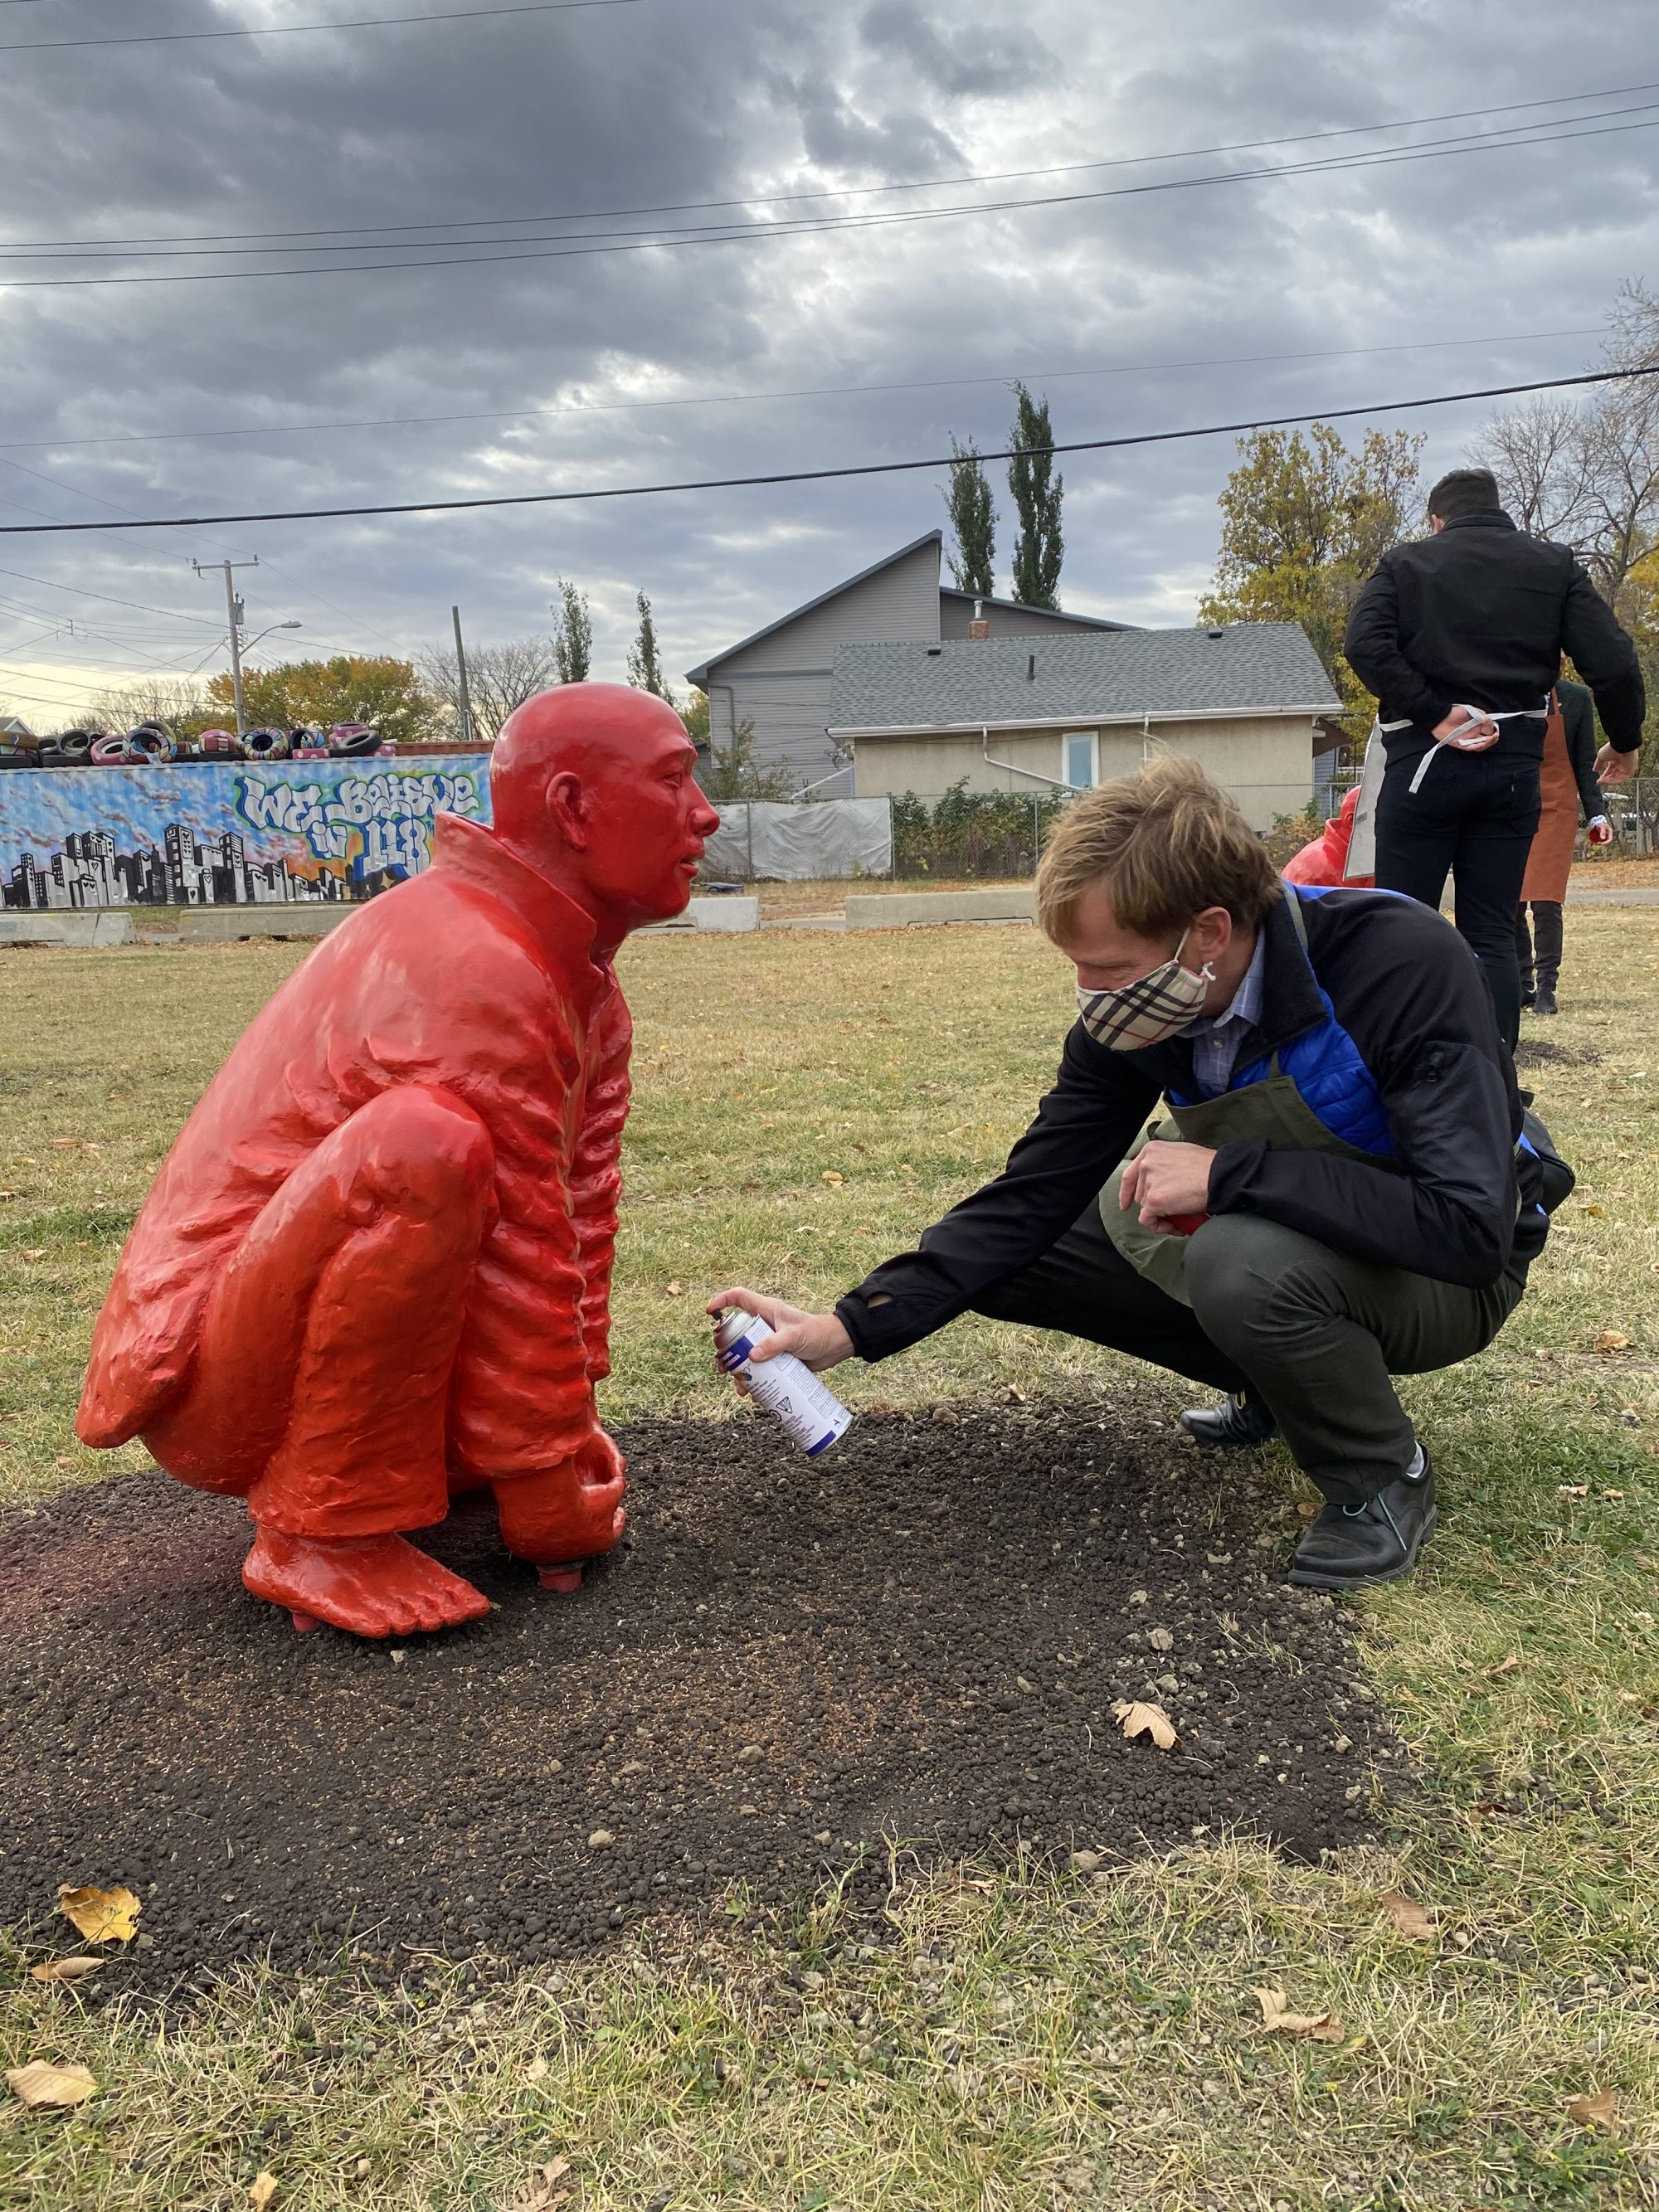 A man spray painting a statue of a man squatting down